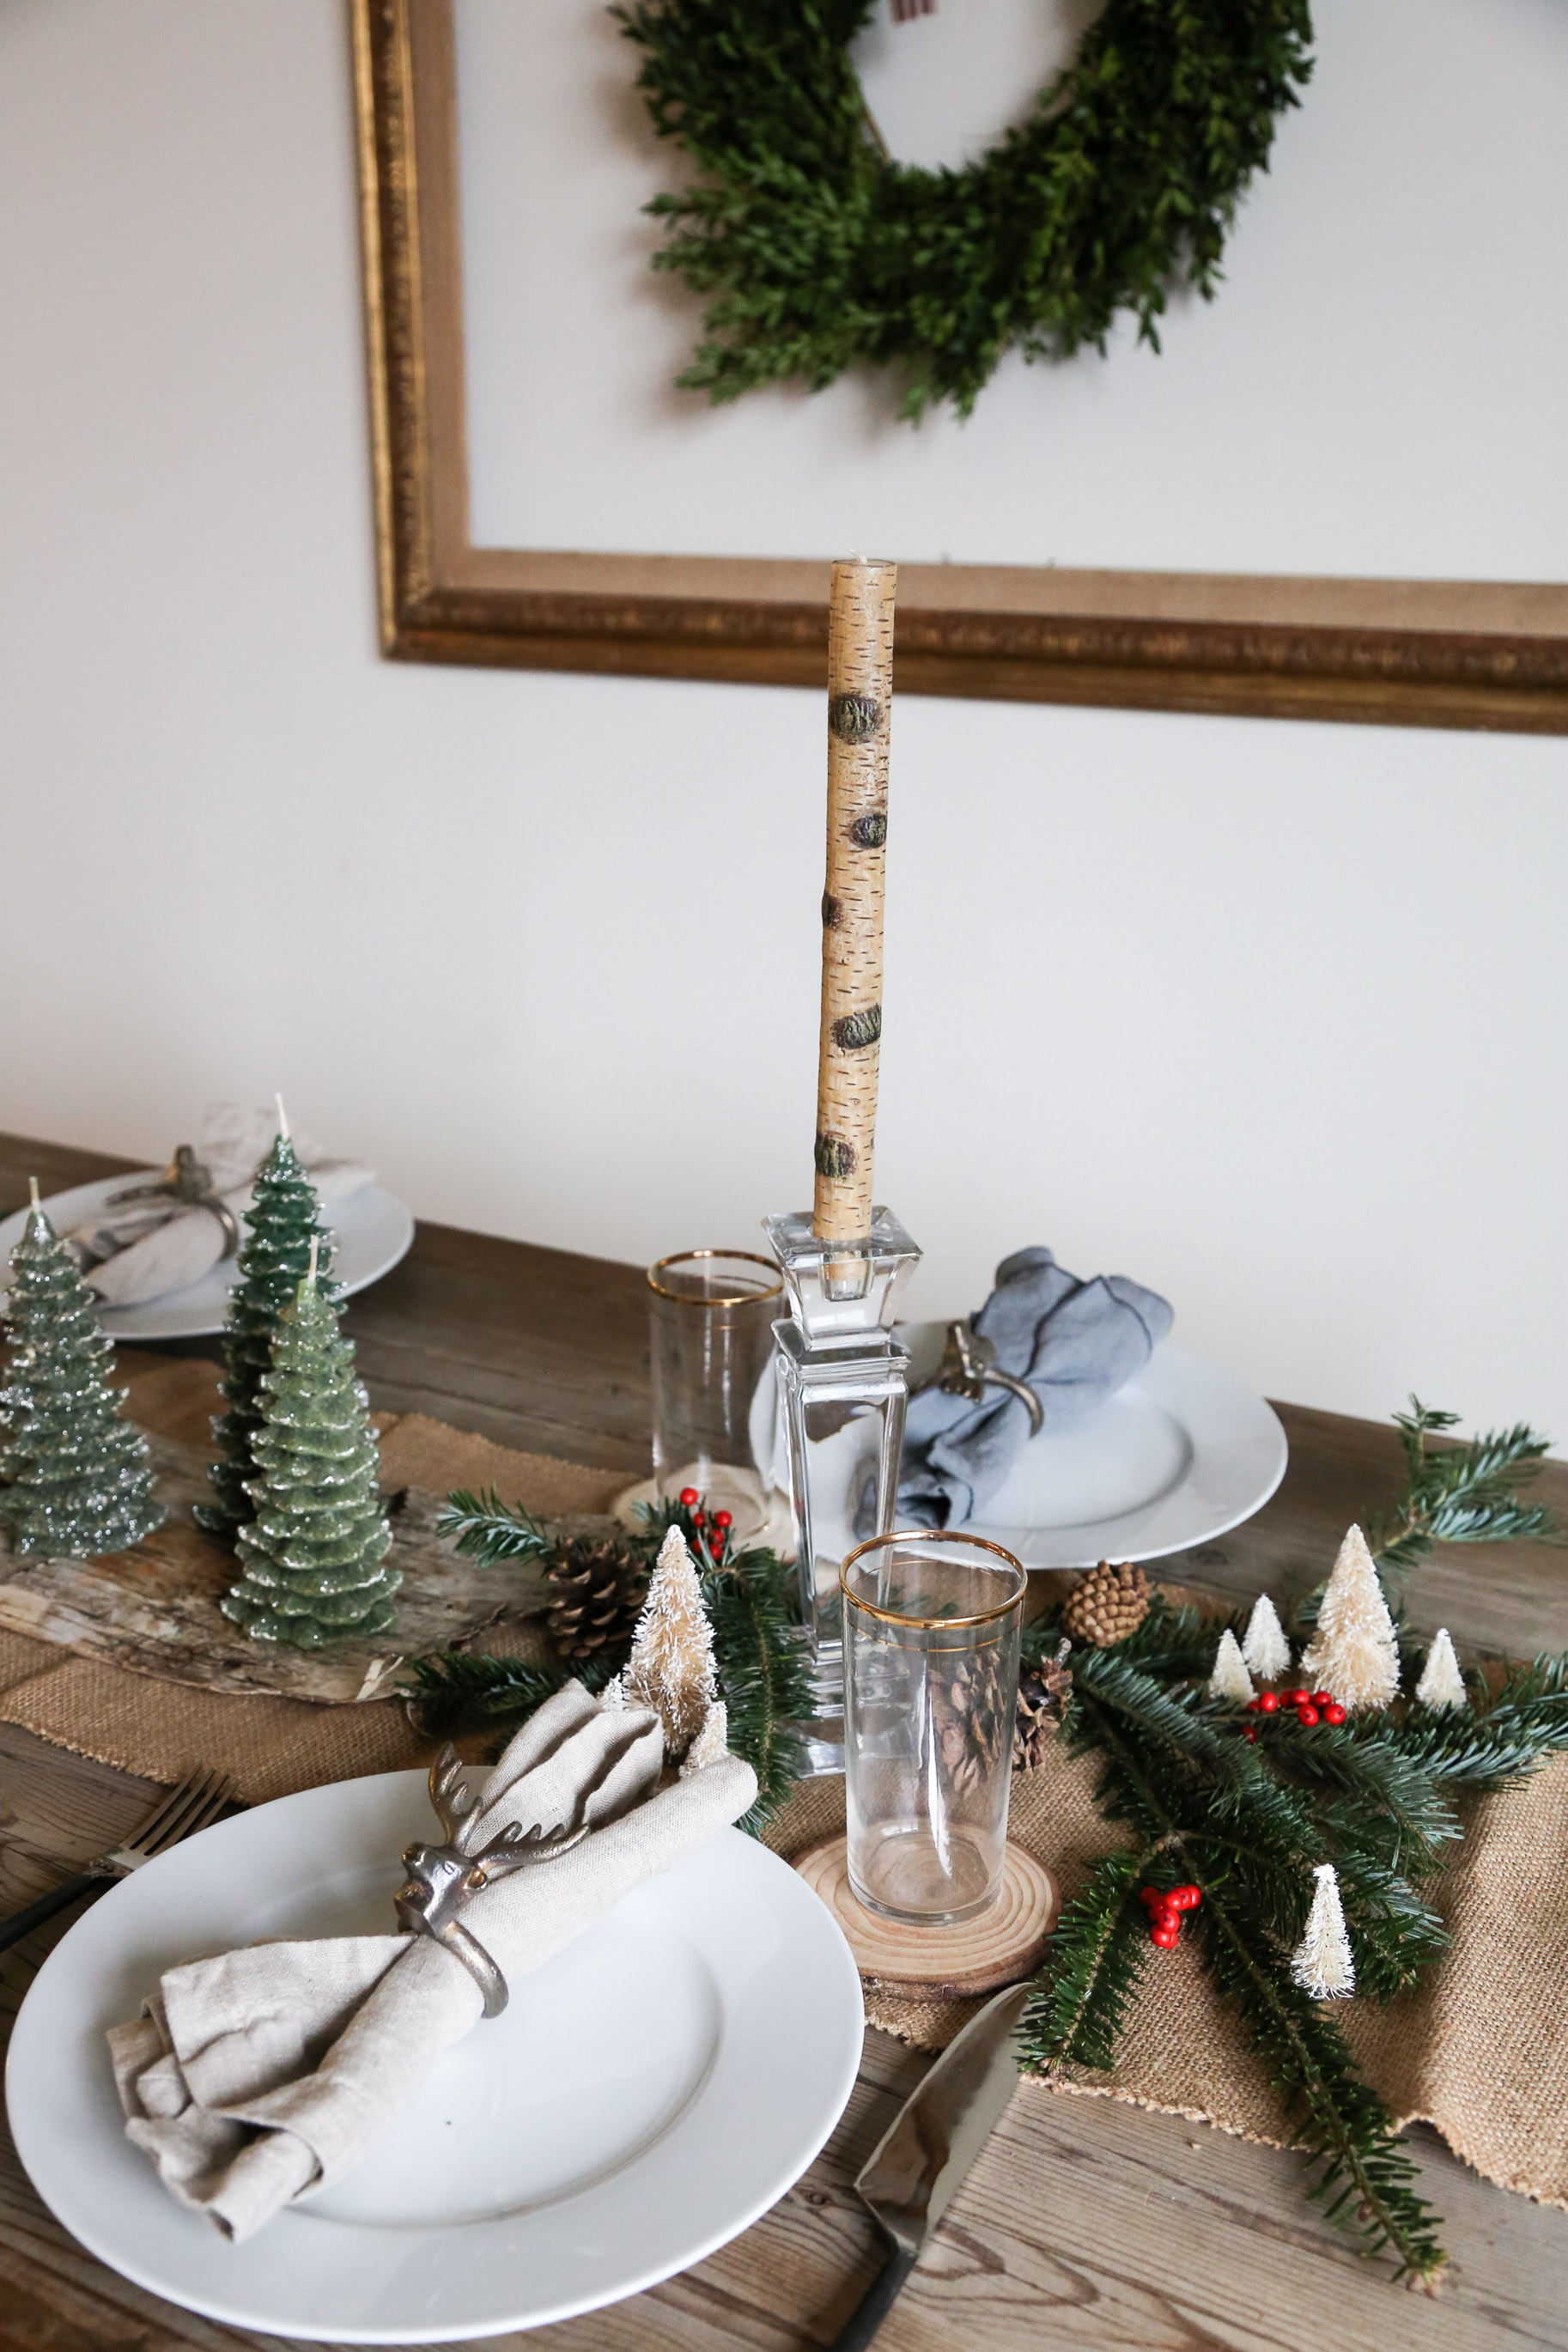 How-to-create-a-rustic-cozy-winter-woods-tablescape-for-the-holidays1.jpg